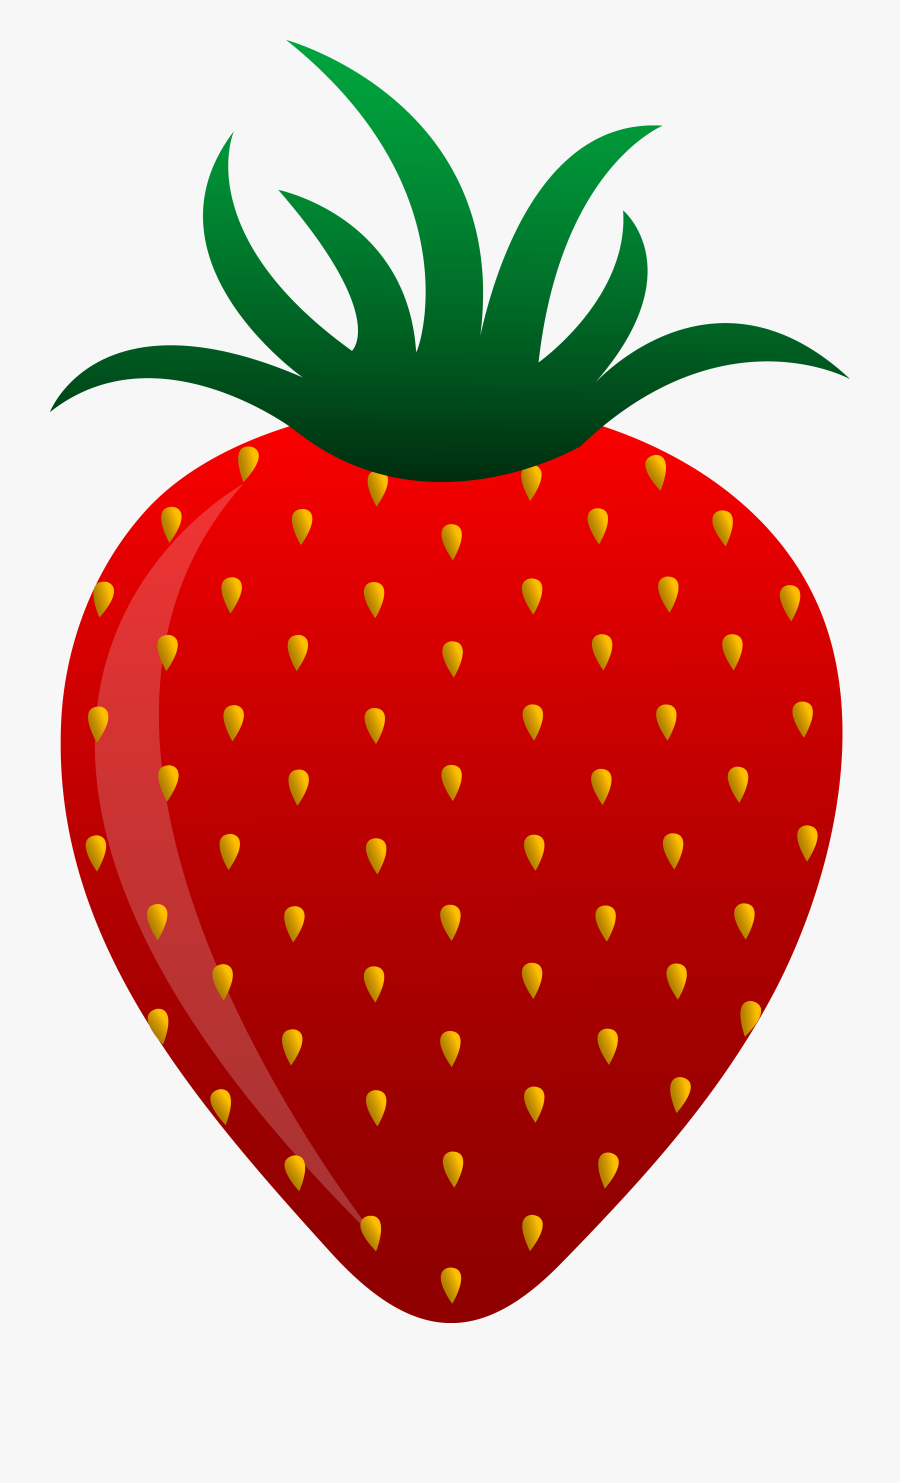 Red Strawberry Vector Art - Strawberry Clipart, Transparent Clipart